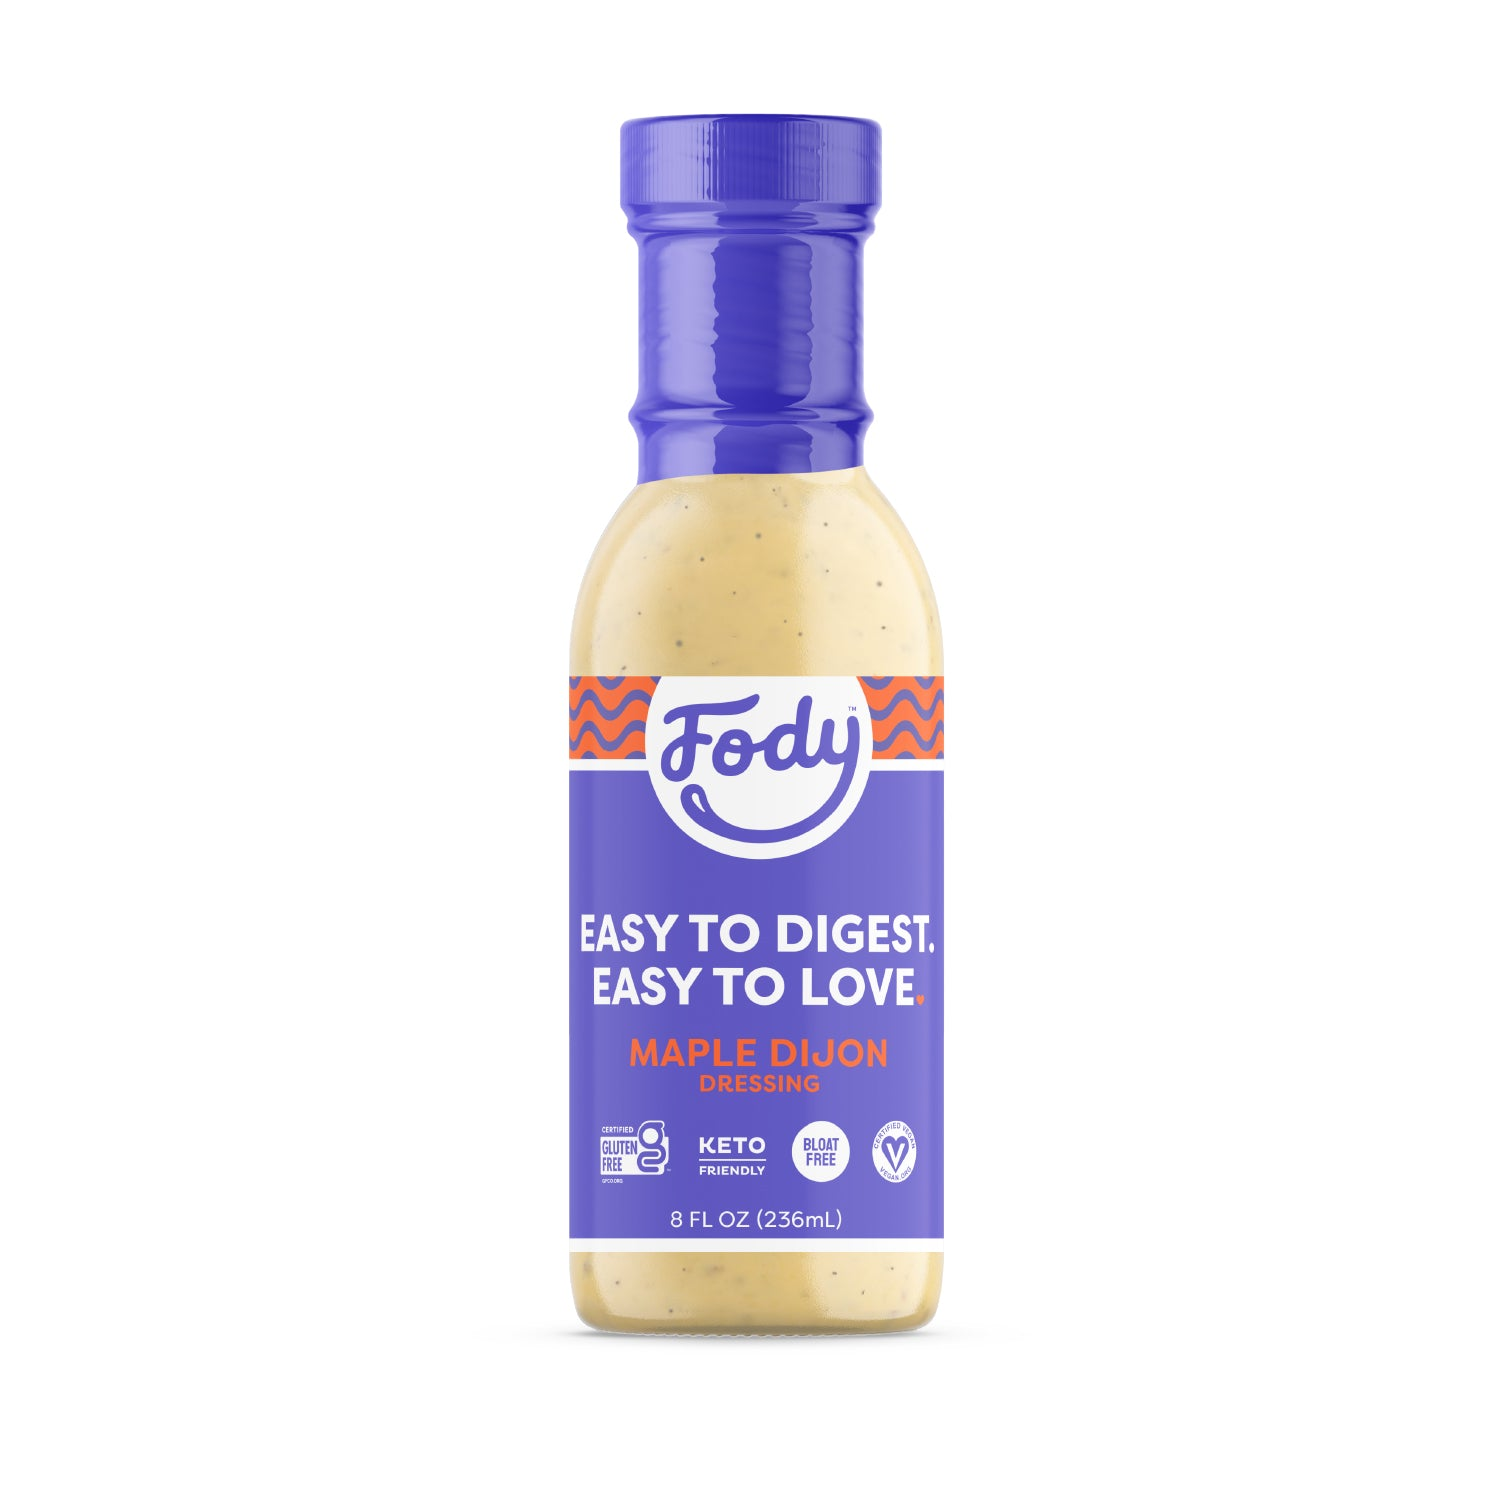 fody maple dijon dressing